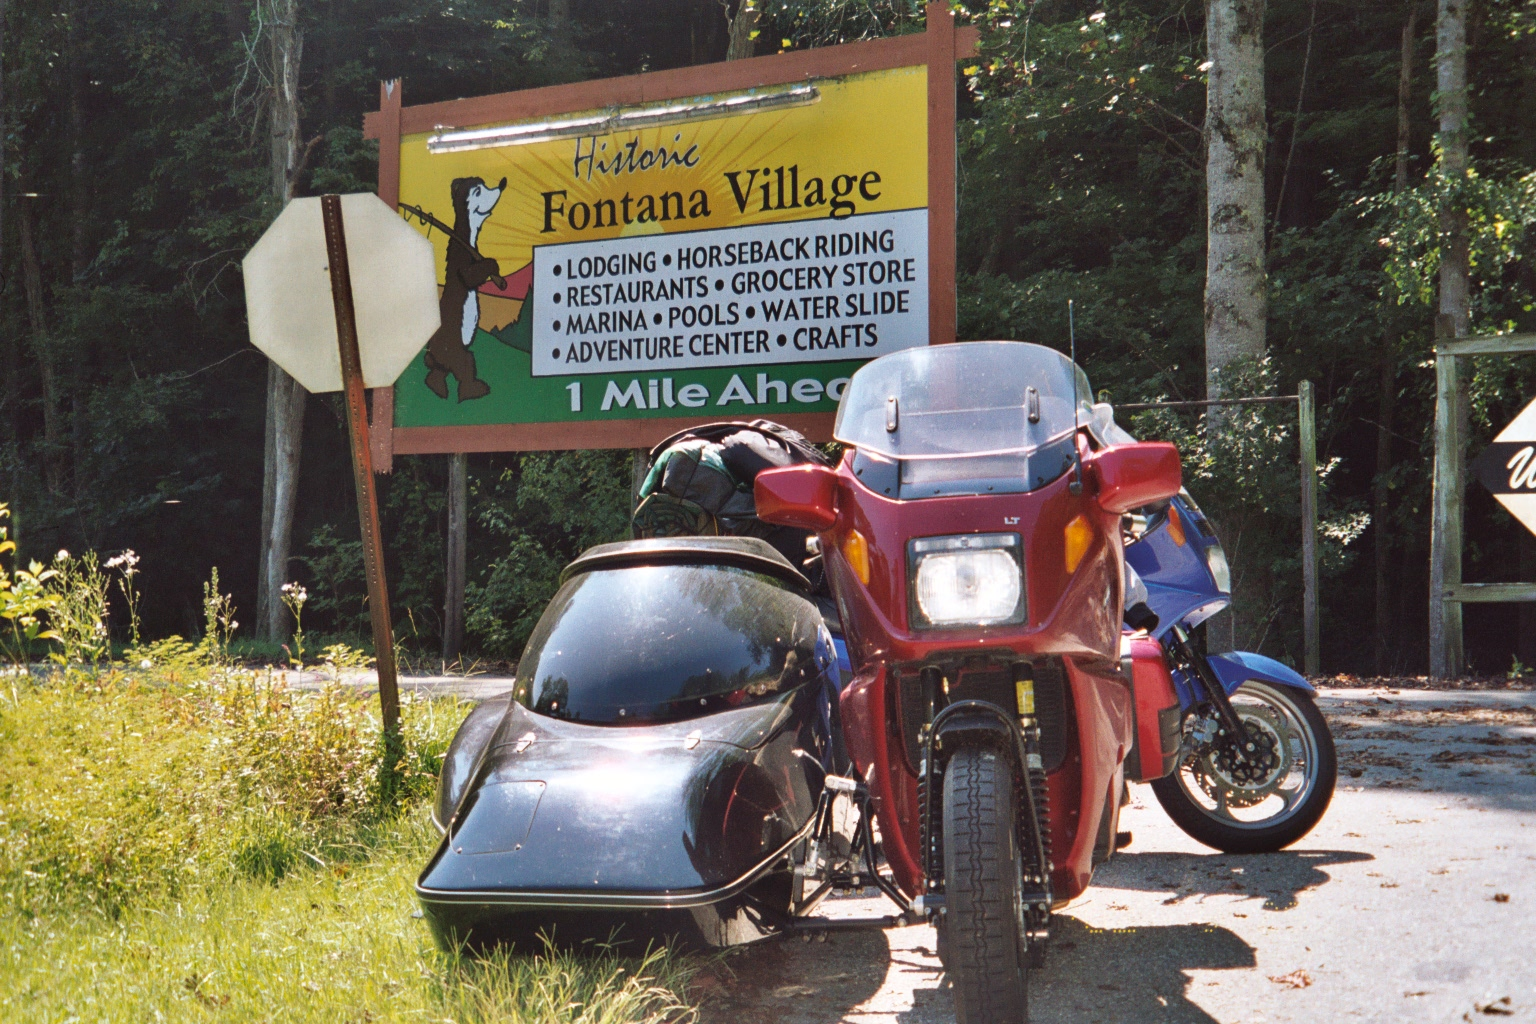 Here we are at Fontana Village, a couple of miles from the Dragon